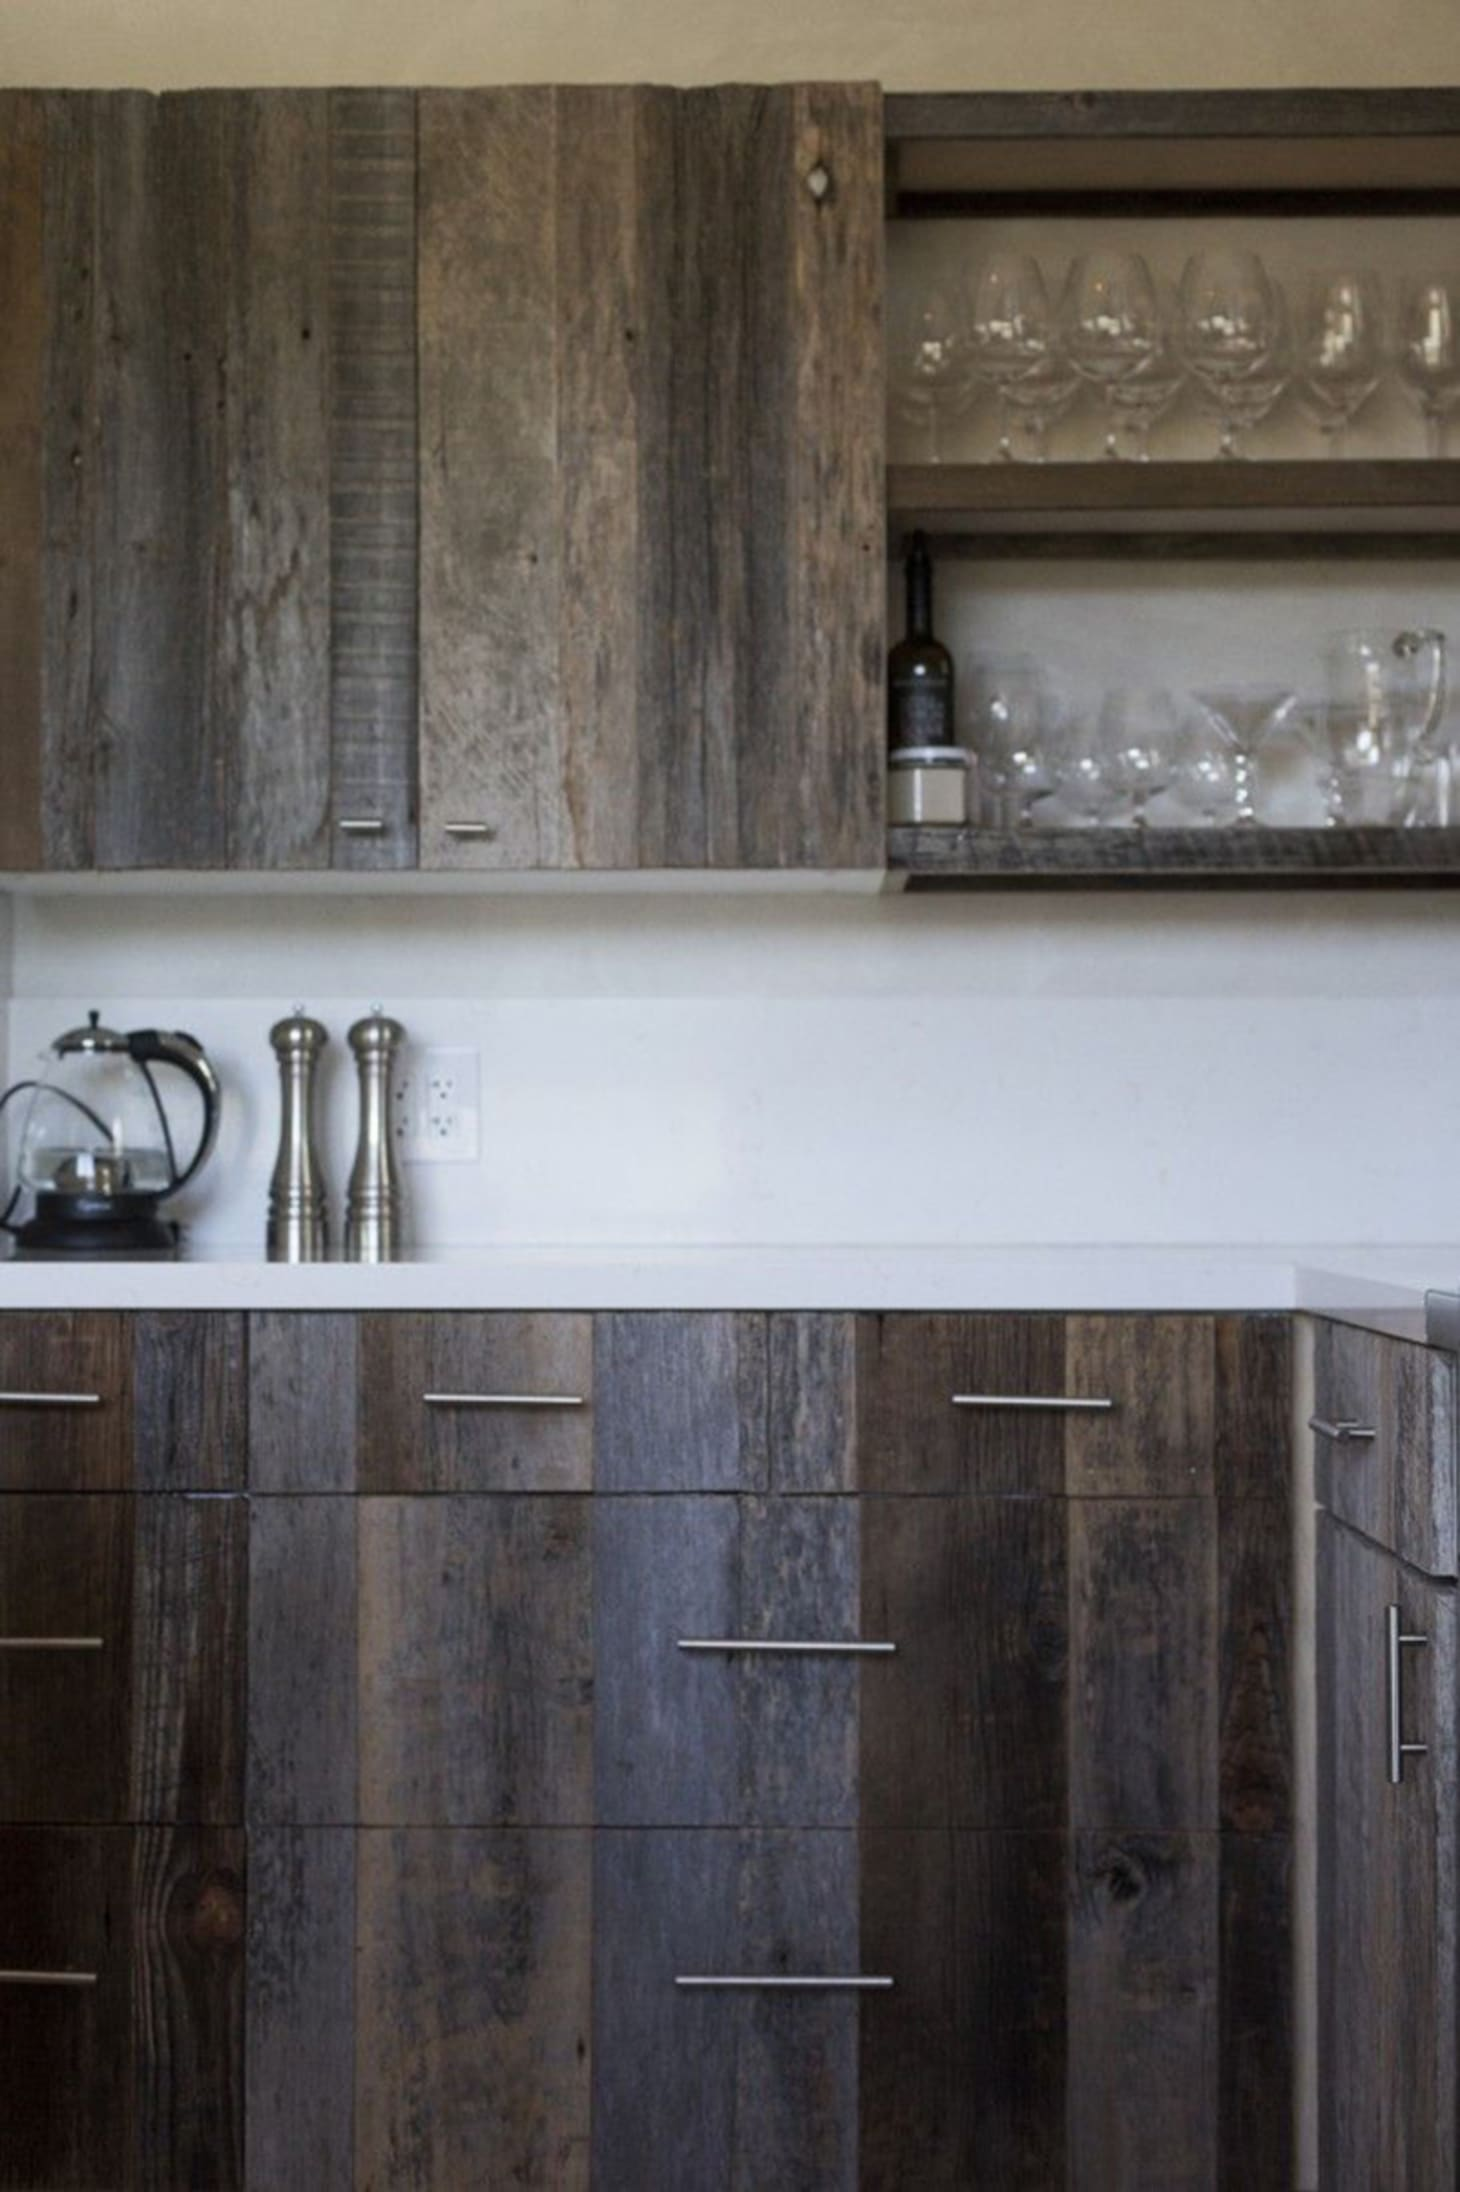 Kitchen Cabinet Refacing: Options, Cost + Information ...